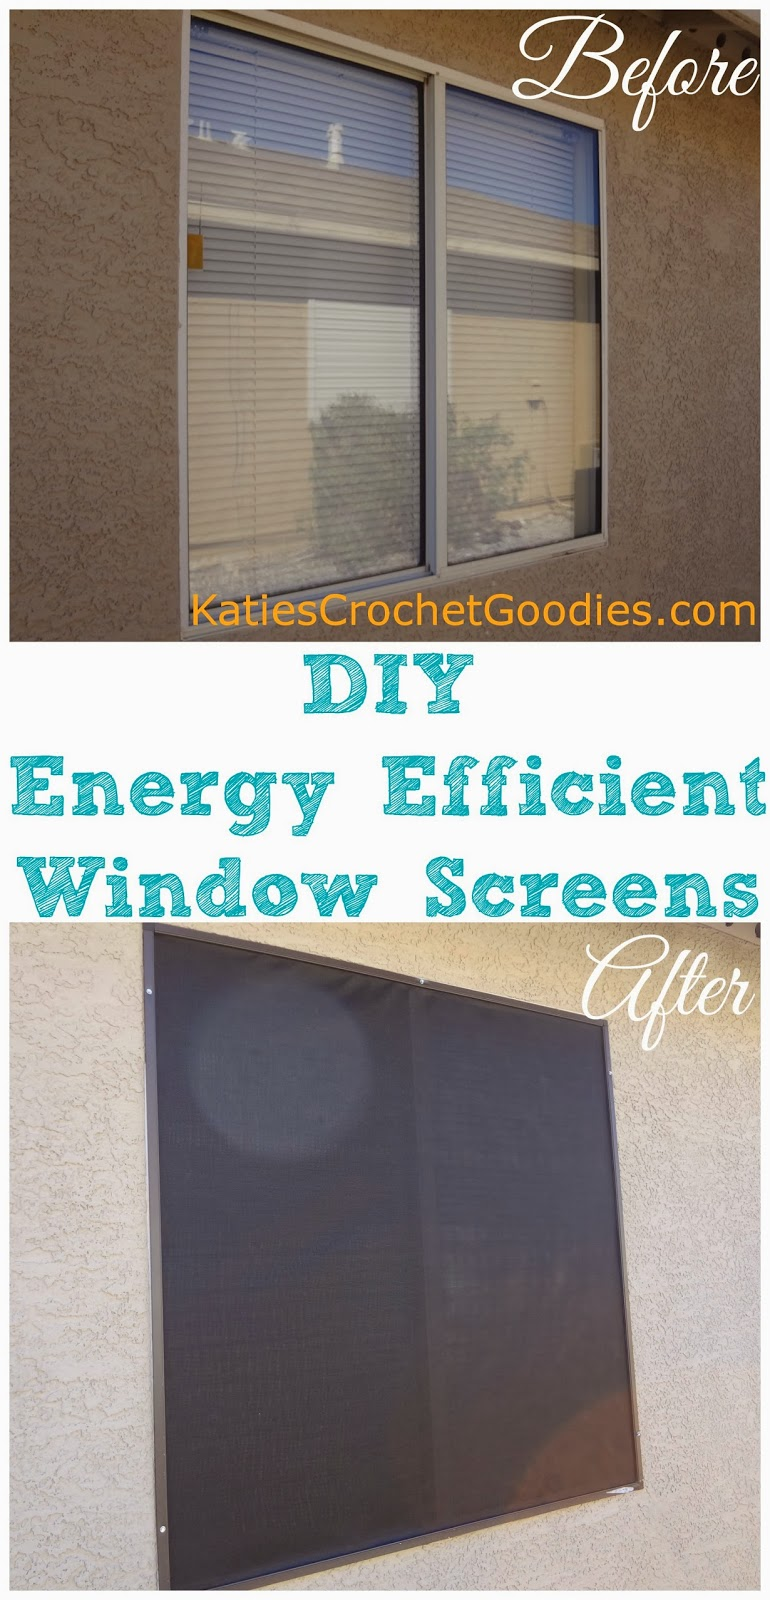 Diy energy efficient window screens katie 39 s crochet goodies for What makes a window energy efficient